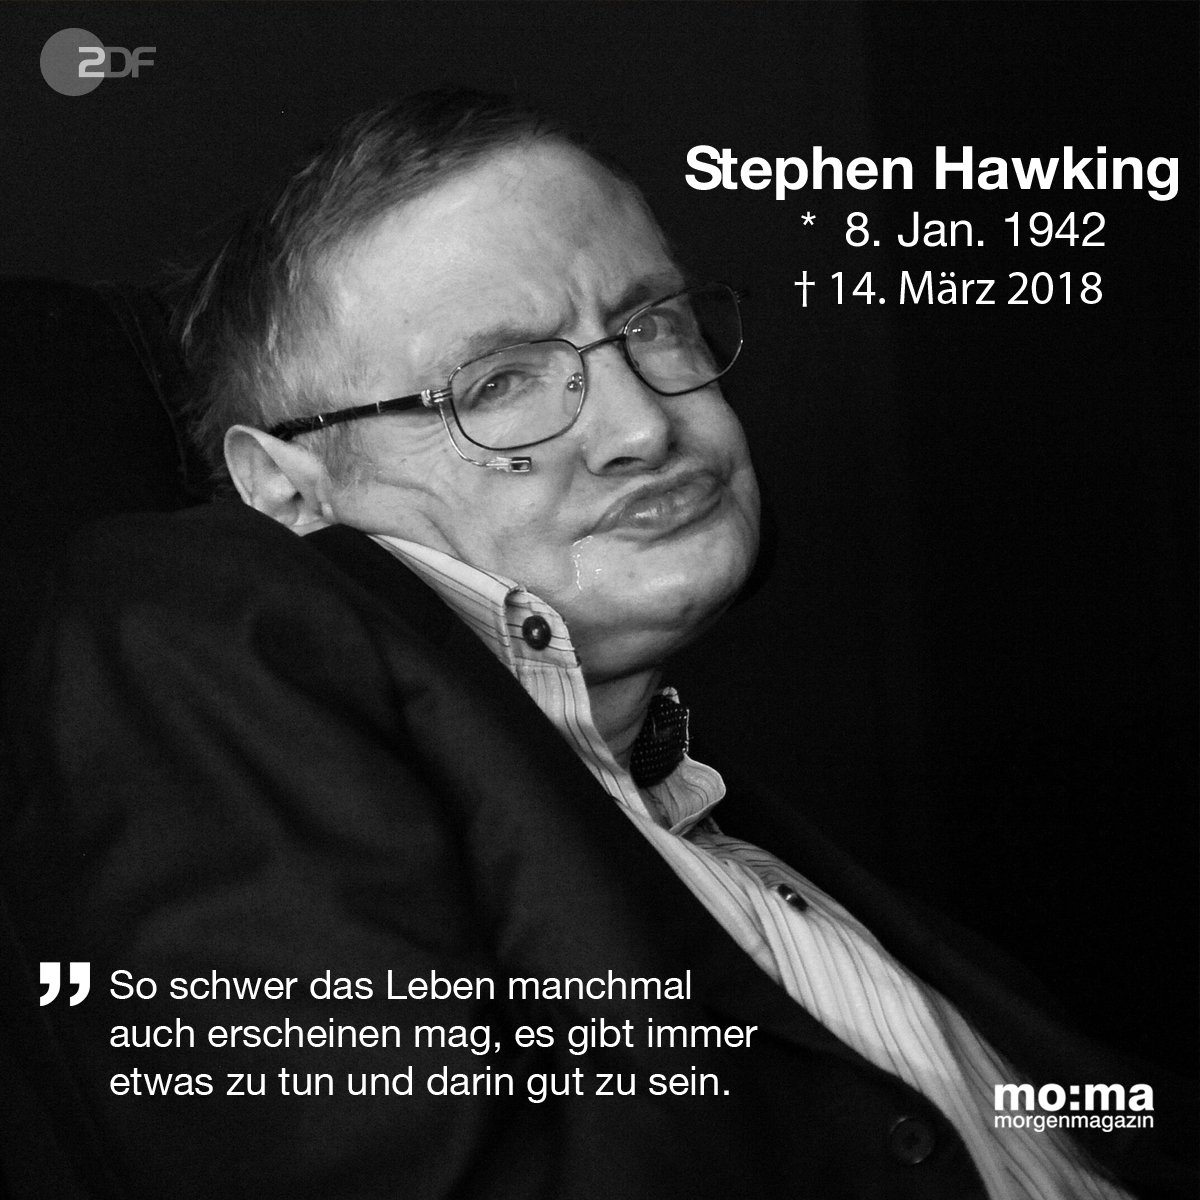 zdf morgenmagazin on twitter stephen hawking ist tot. Black Bedroom Furniture Sets. Home Design Ideas